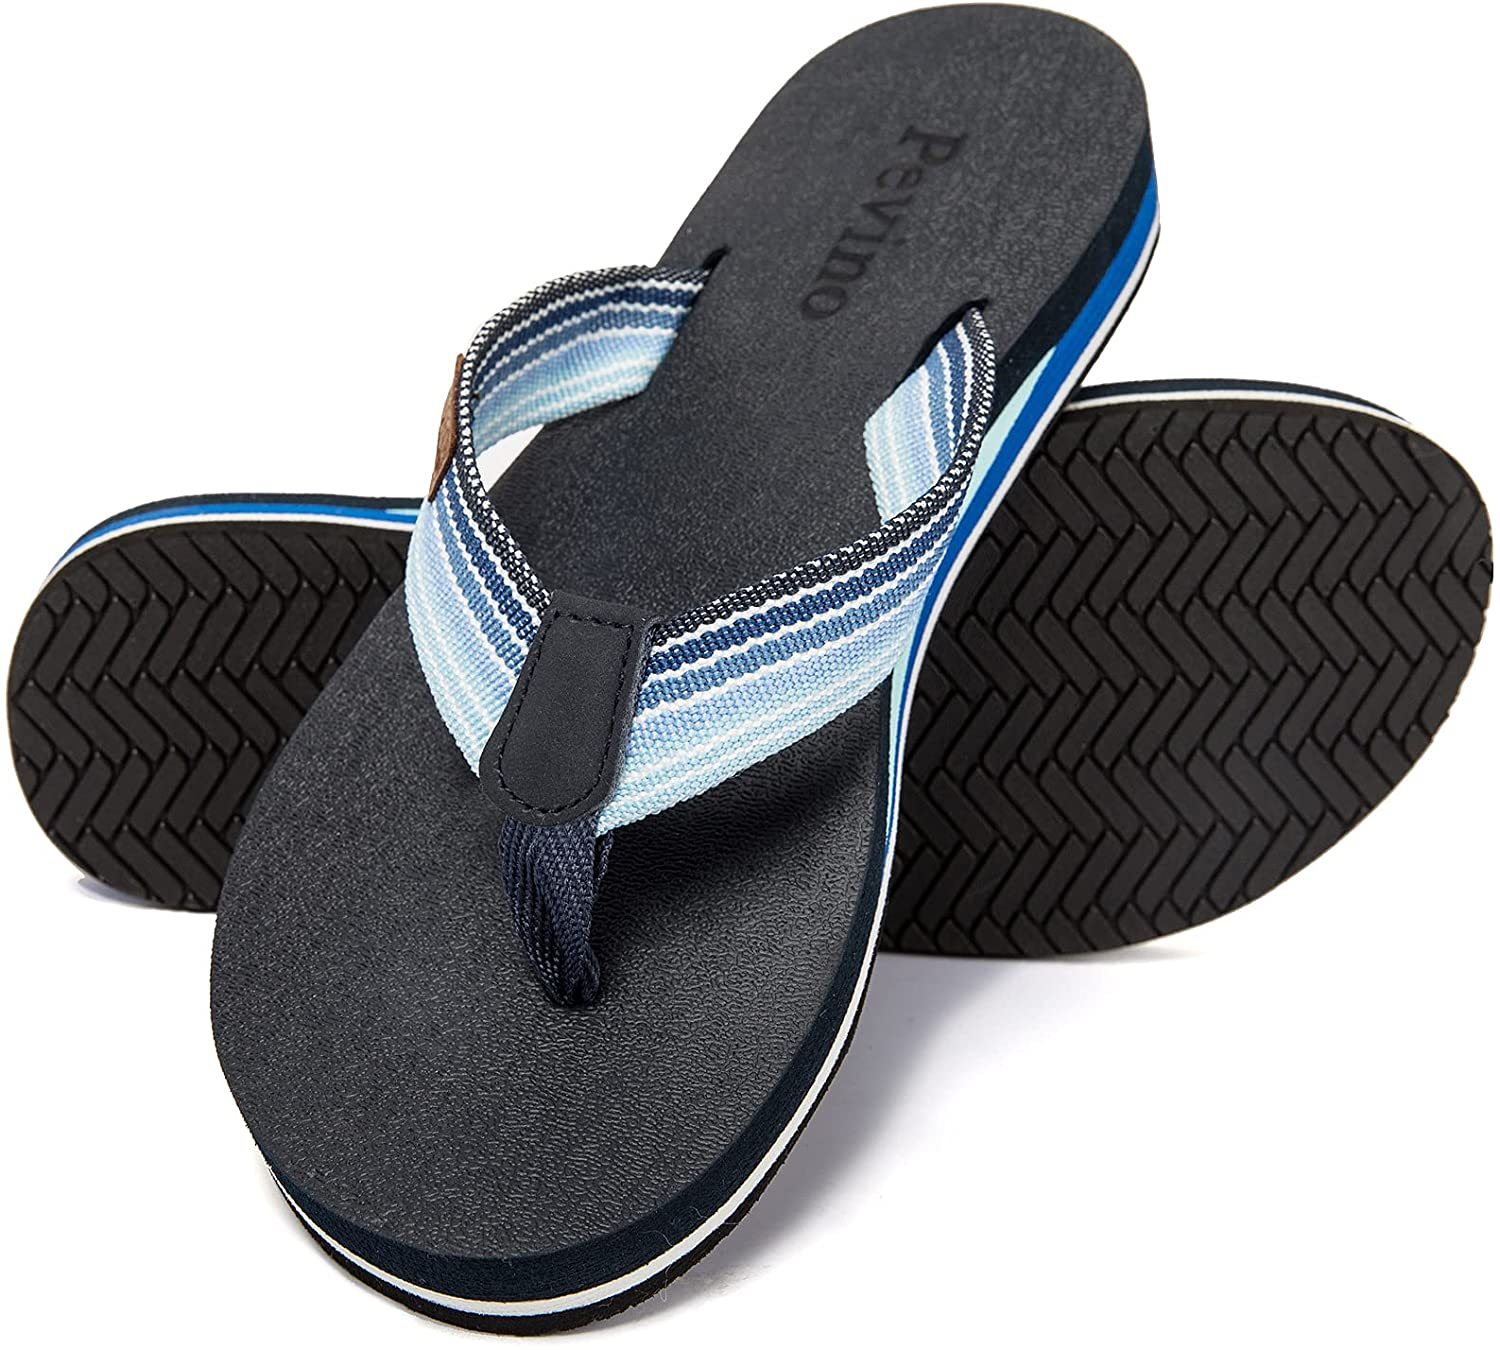 Women's Orthotic Flip Flops Casual In a popularity with Thong Comfortable Sandal Limited price sale